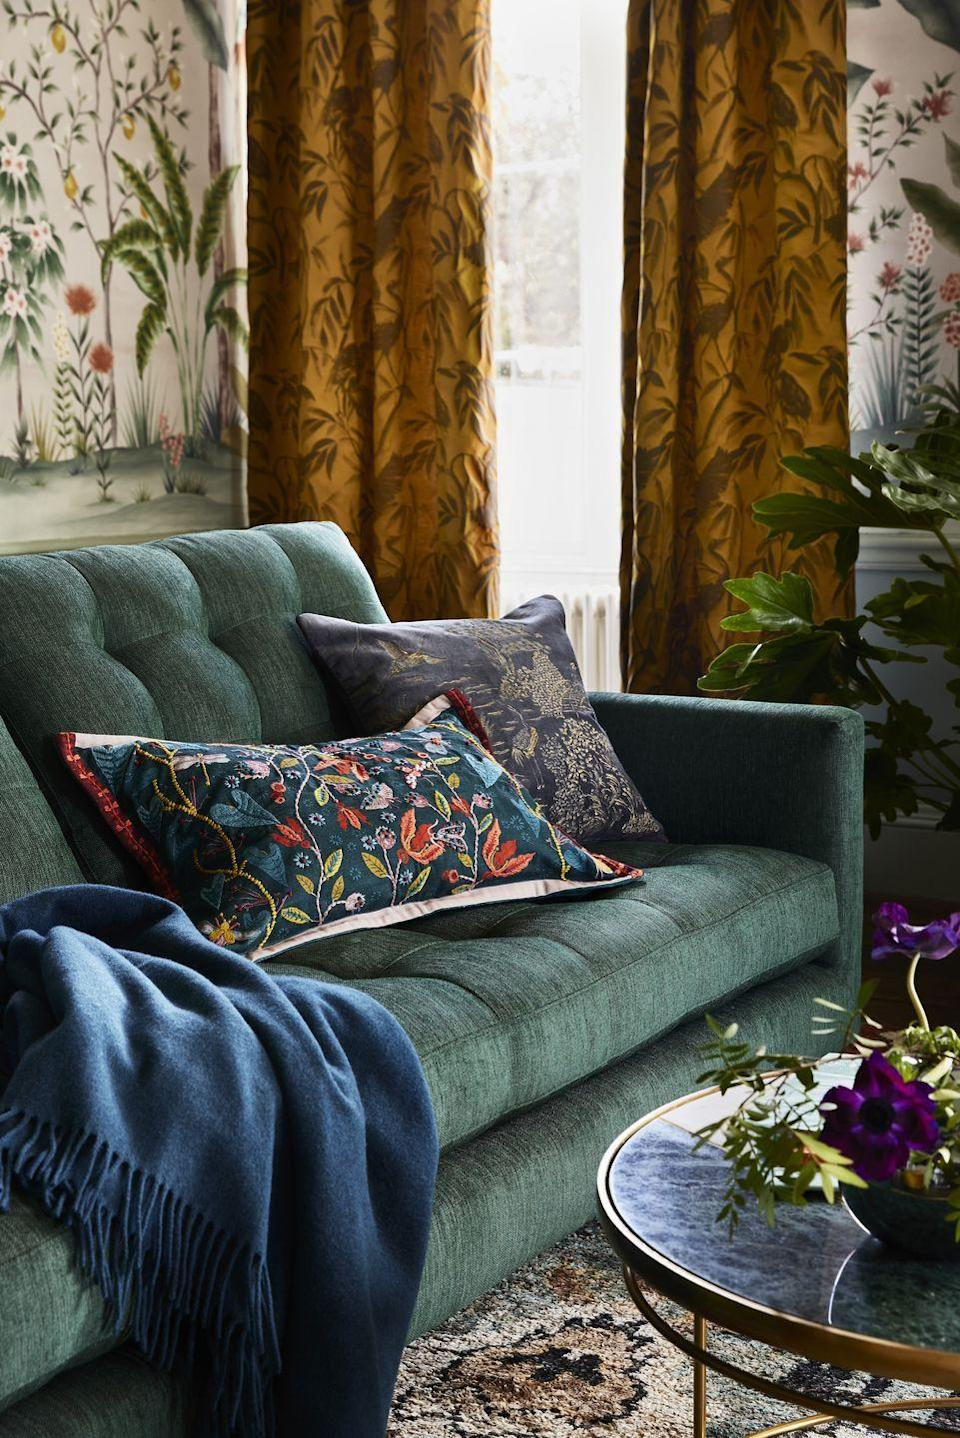 """<p>Layer in a few extra throw pillows for a quick winter home decor update. For the upcoming season, it's all about getting creative with punchy patterns, playful prints and textures. </p><p>""""Pattern plays an important role here, whether it's beautifully ornate wallpaper and curtains or a scattering of embroidered cushions,"""" say John Lewis. """"For this we've taken inspiration from our archive and introduced new designs for winter. They never fail to inject a sense of escapism wherever they're used.""""</p>"""